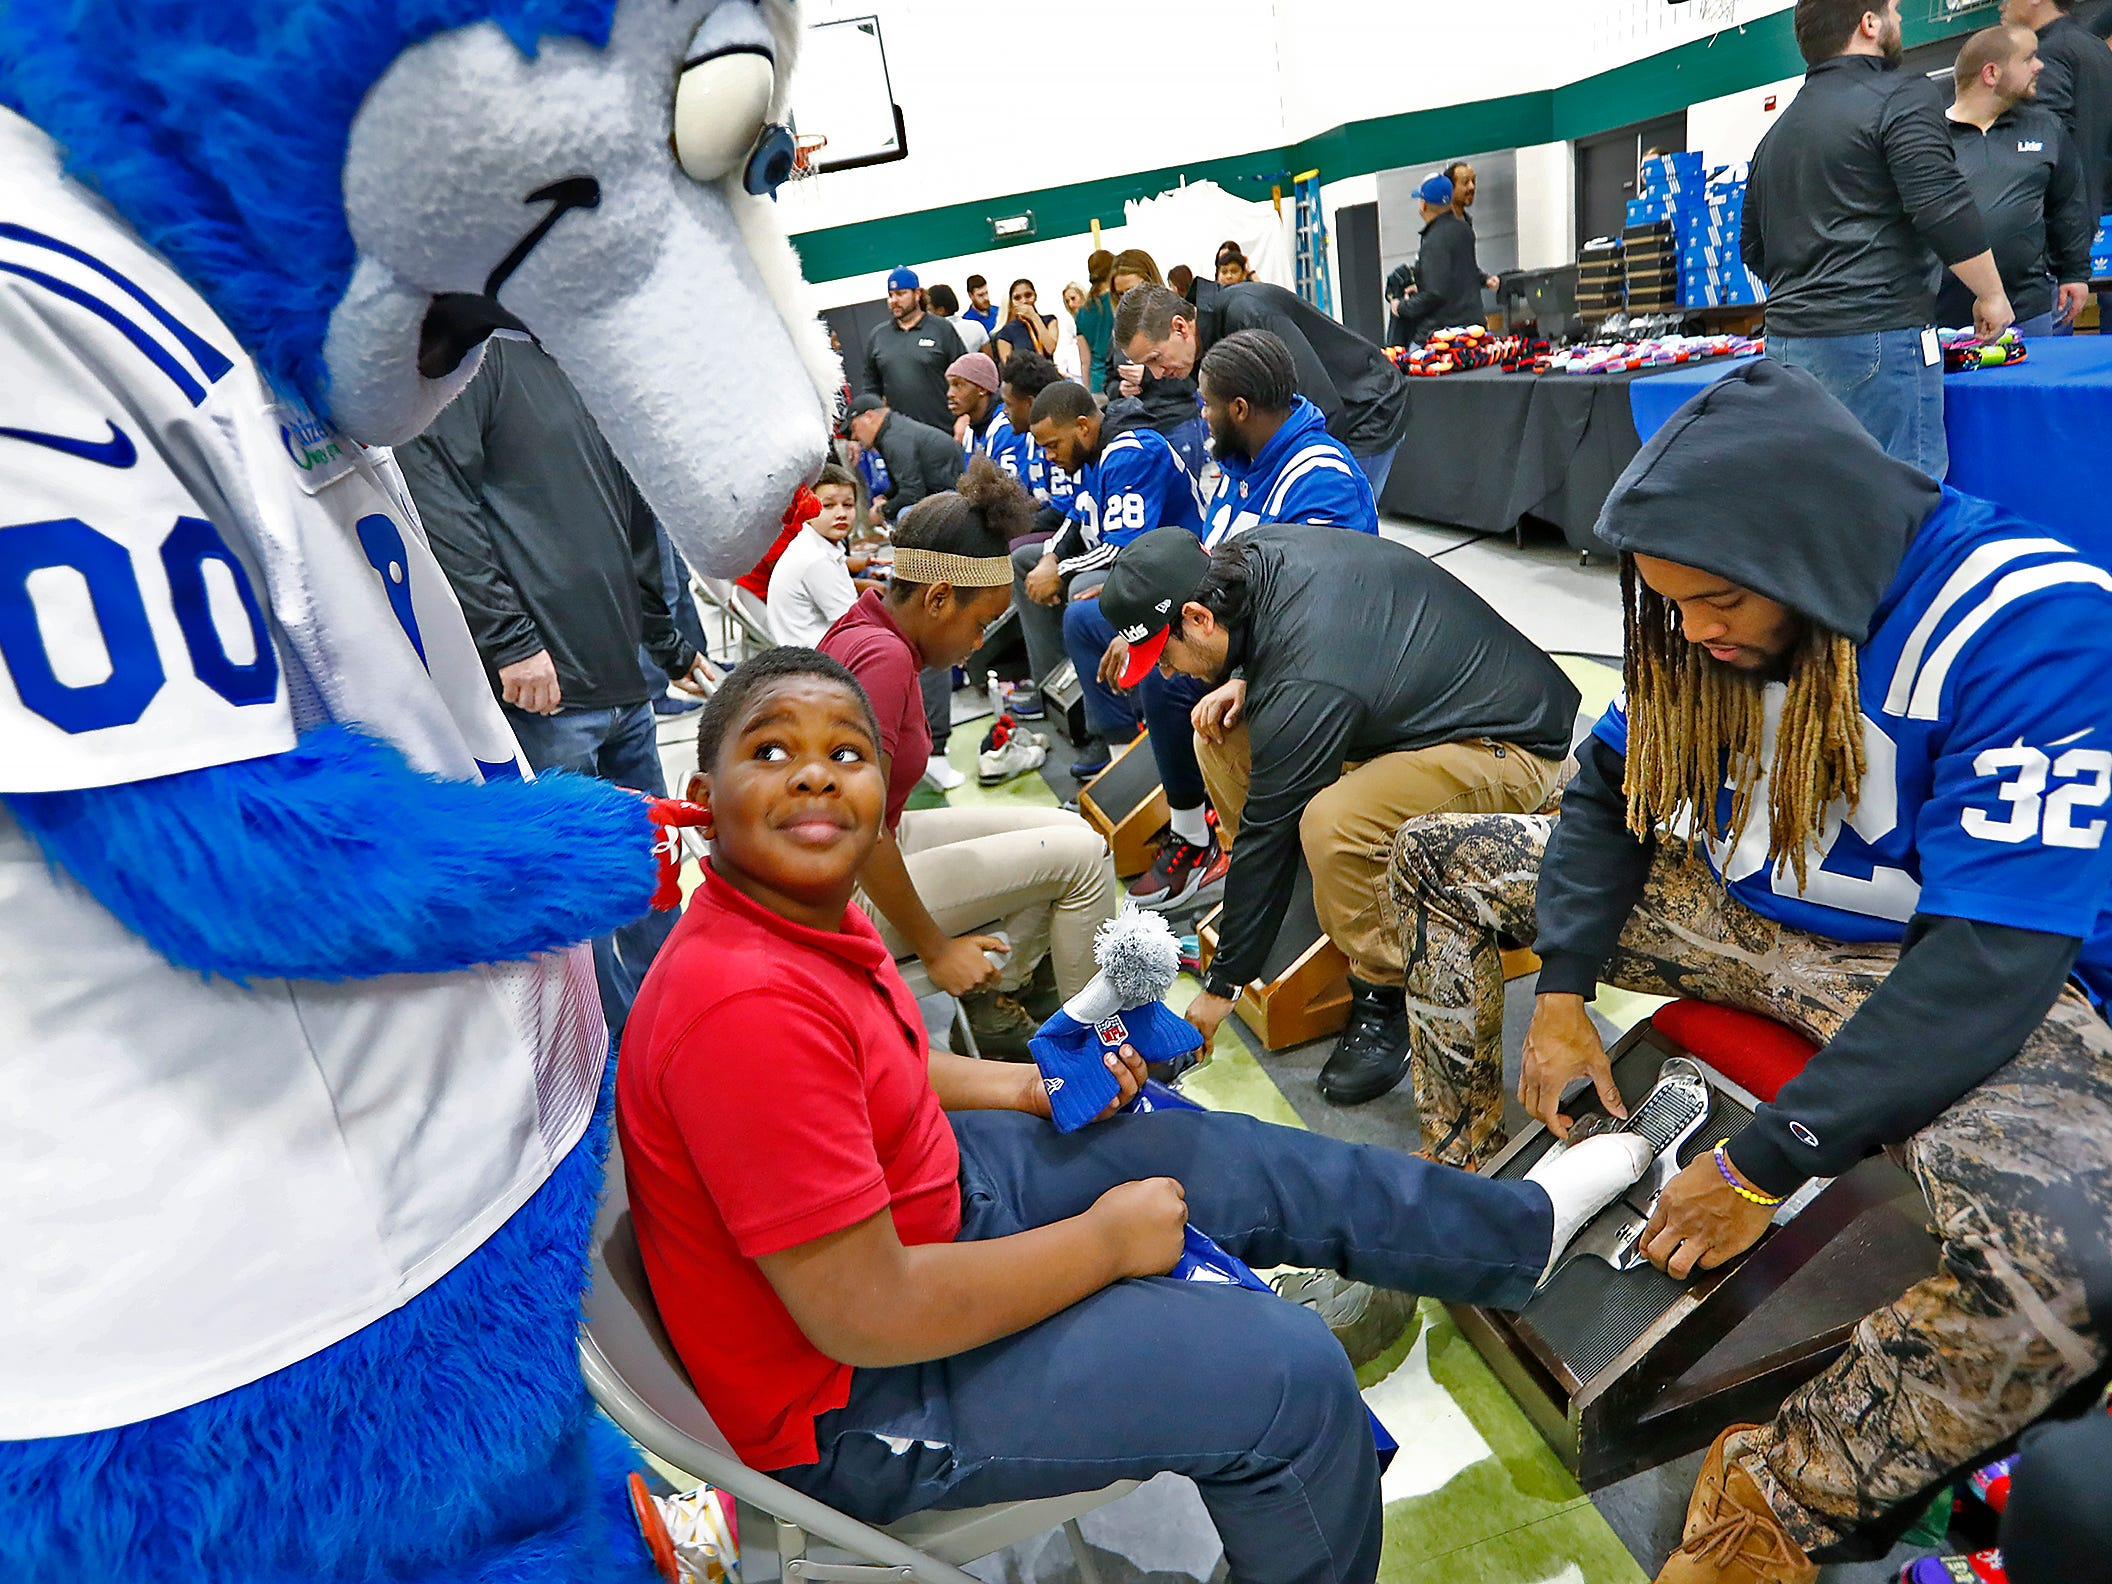 Indianapolis Colts' Jalen Collins fits Marquise Sanders for a new pair of shoes as Colts' mascot Blue teases the student, at Brookside School 54, Monday, Dec. 3, 2018.  Colts players and staff joined as LIDS Sports and its parent company Genesco fit and gave new shoes, socks, hats, and snacks to students as part of the 13th annual Cold Feet, Warm Shoes event.